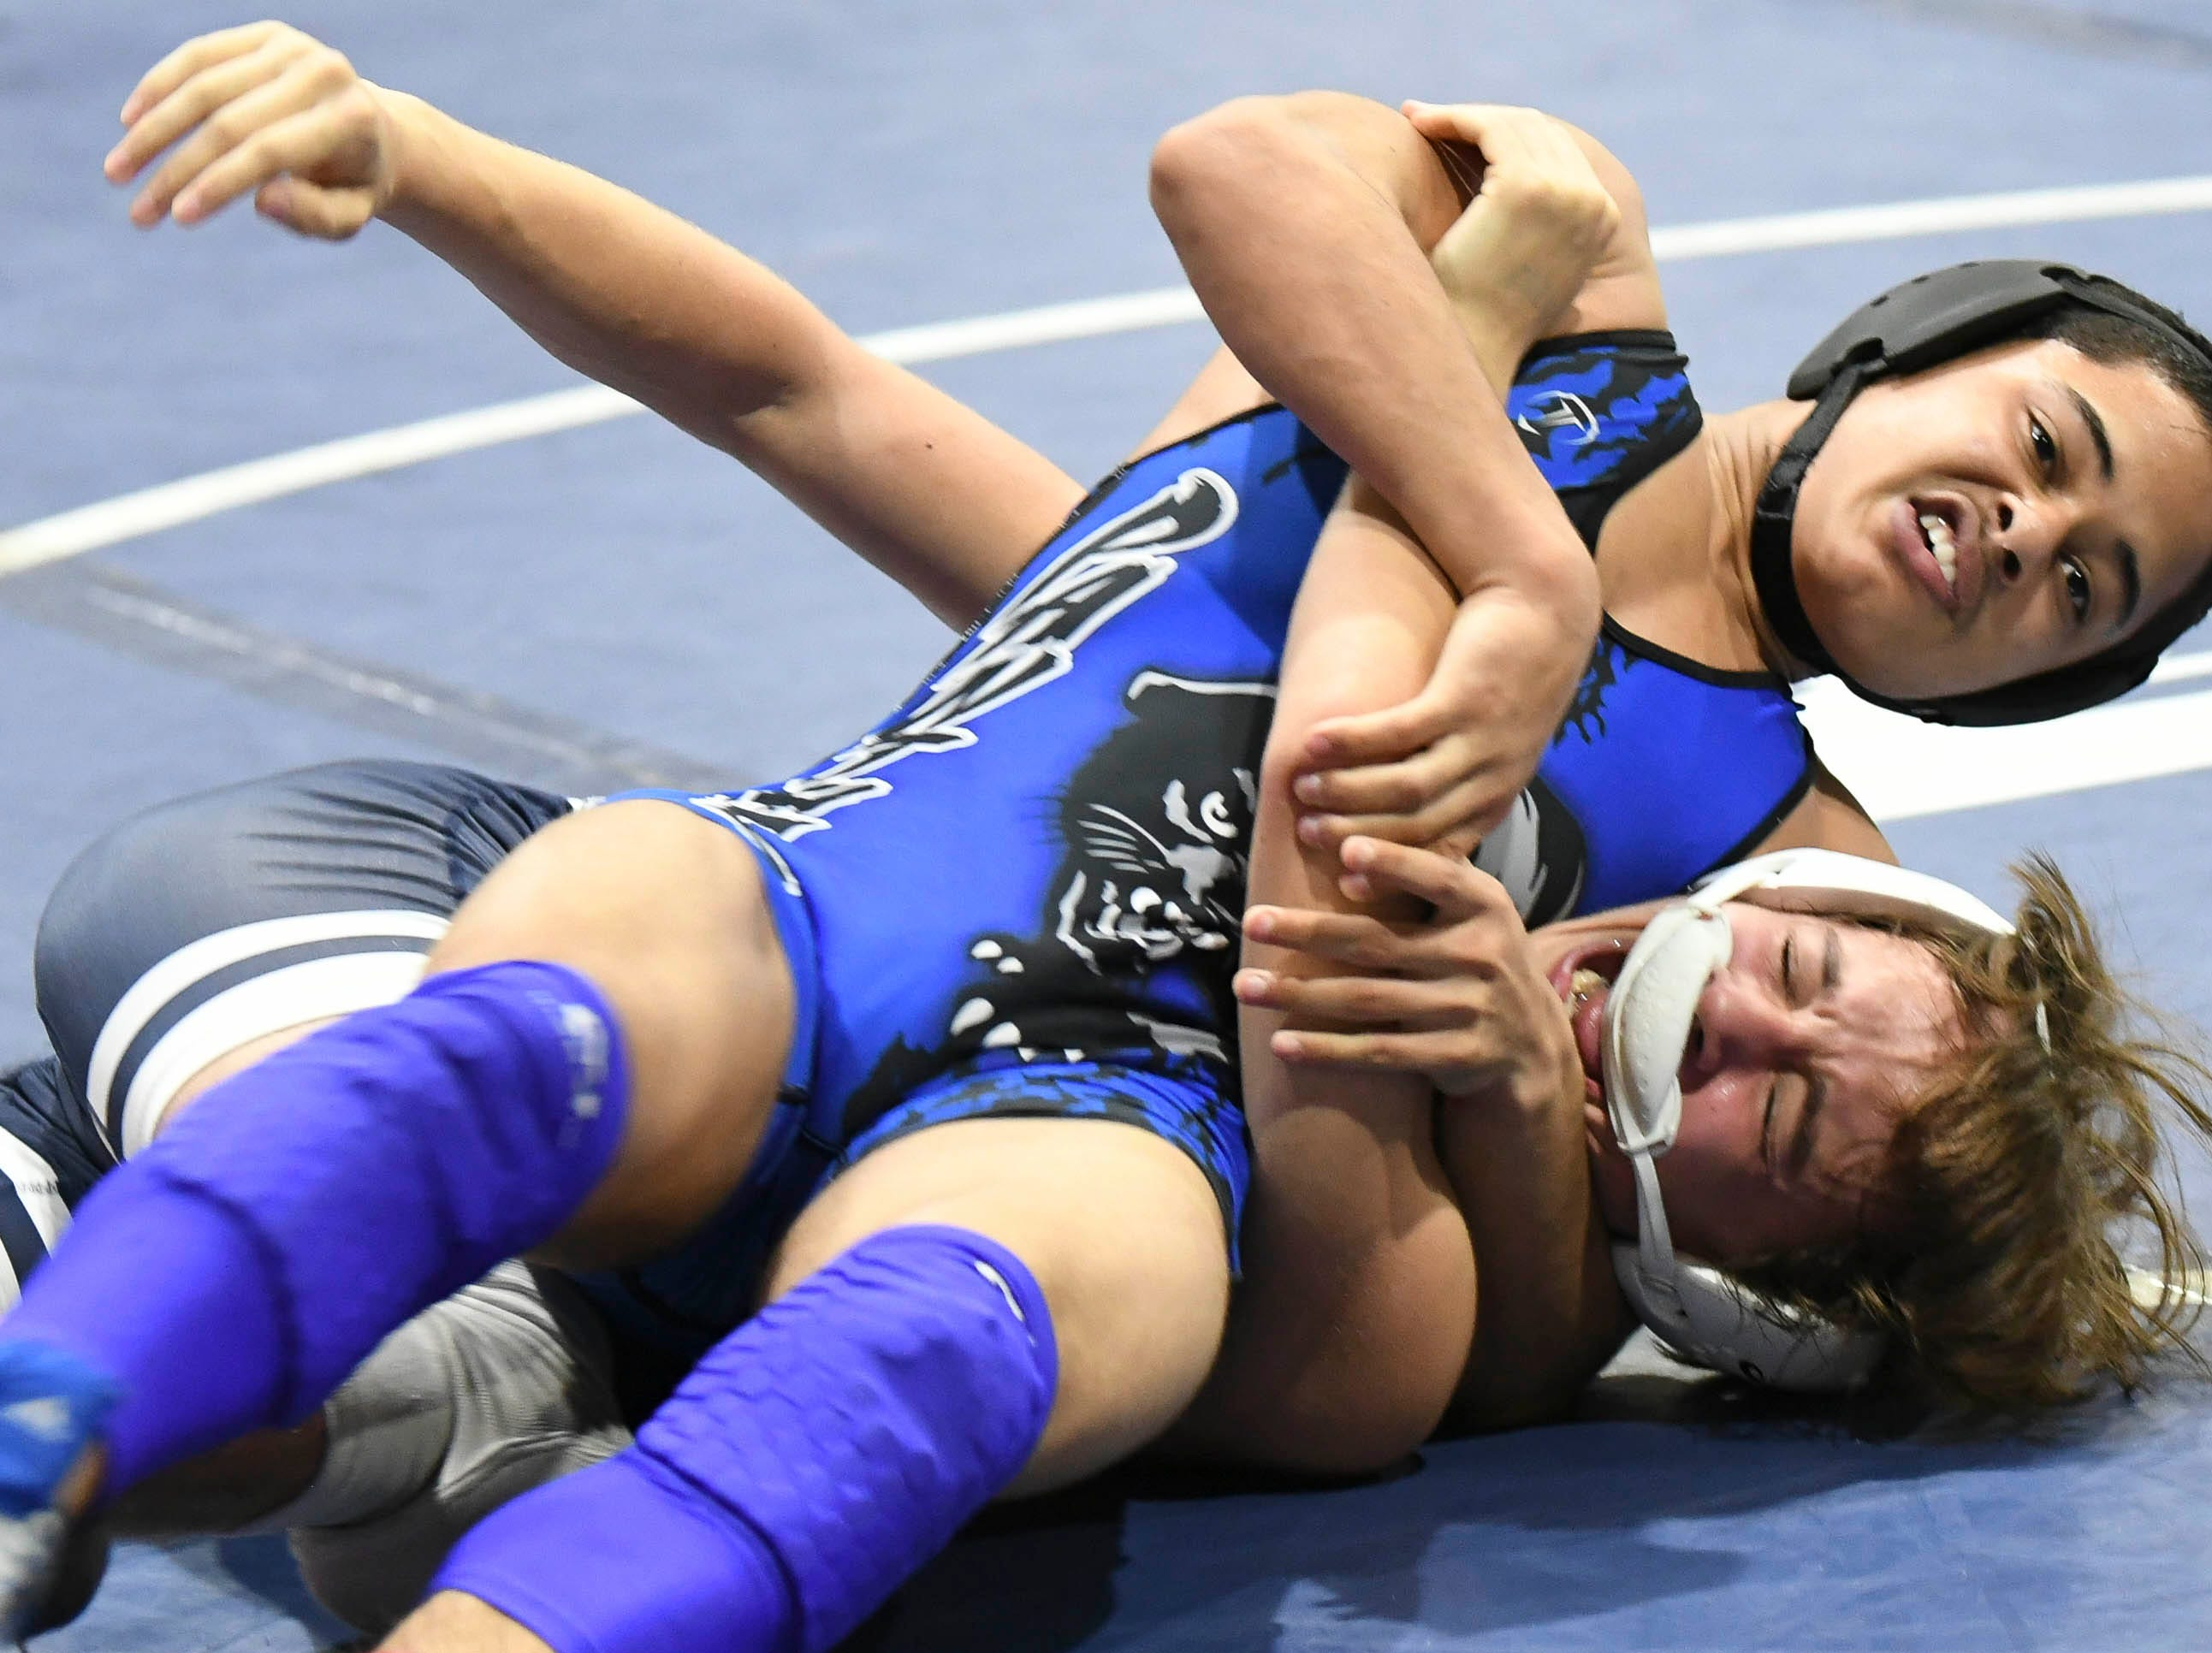 Prynce Rivera of Heritage wrestles Caleb Lovin of Cocoa Beach Saturday during the Cape Coast Conference Wrestling Meet.